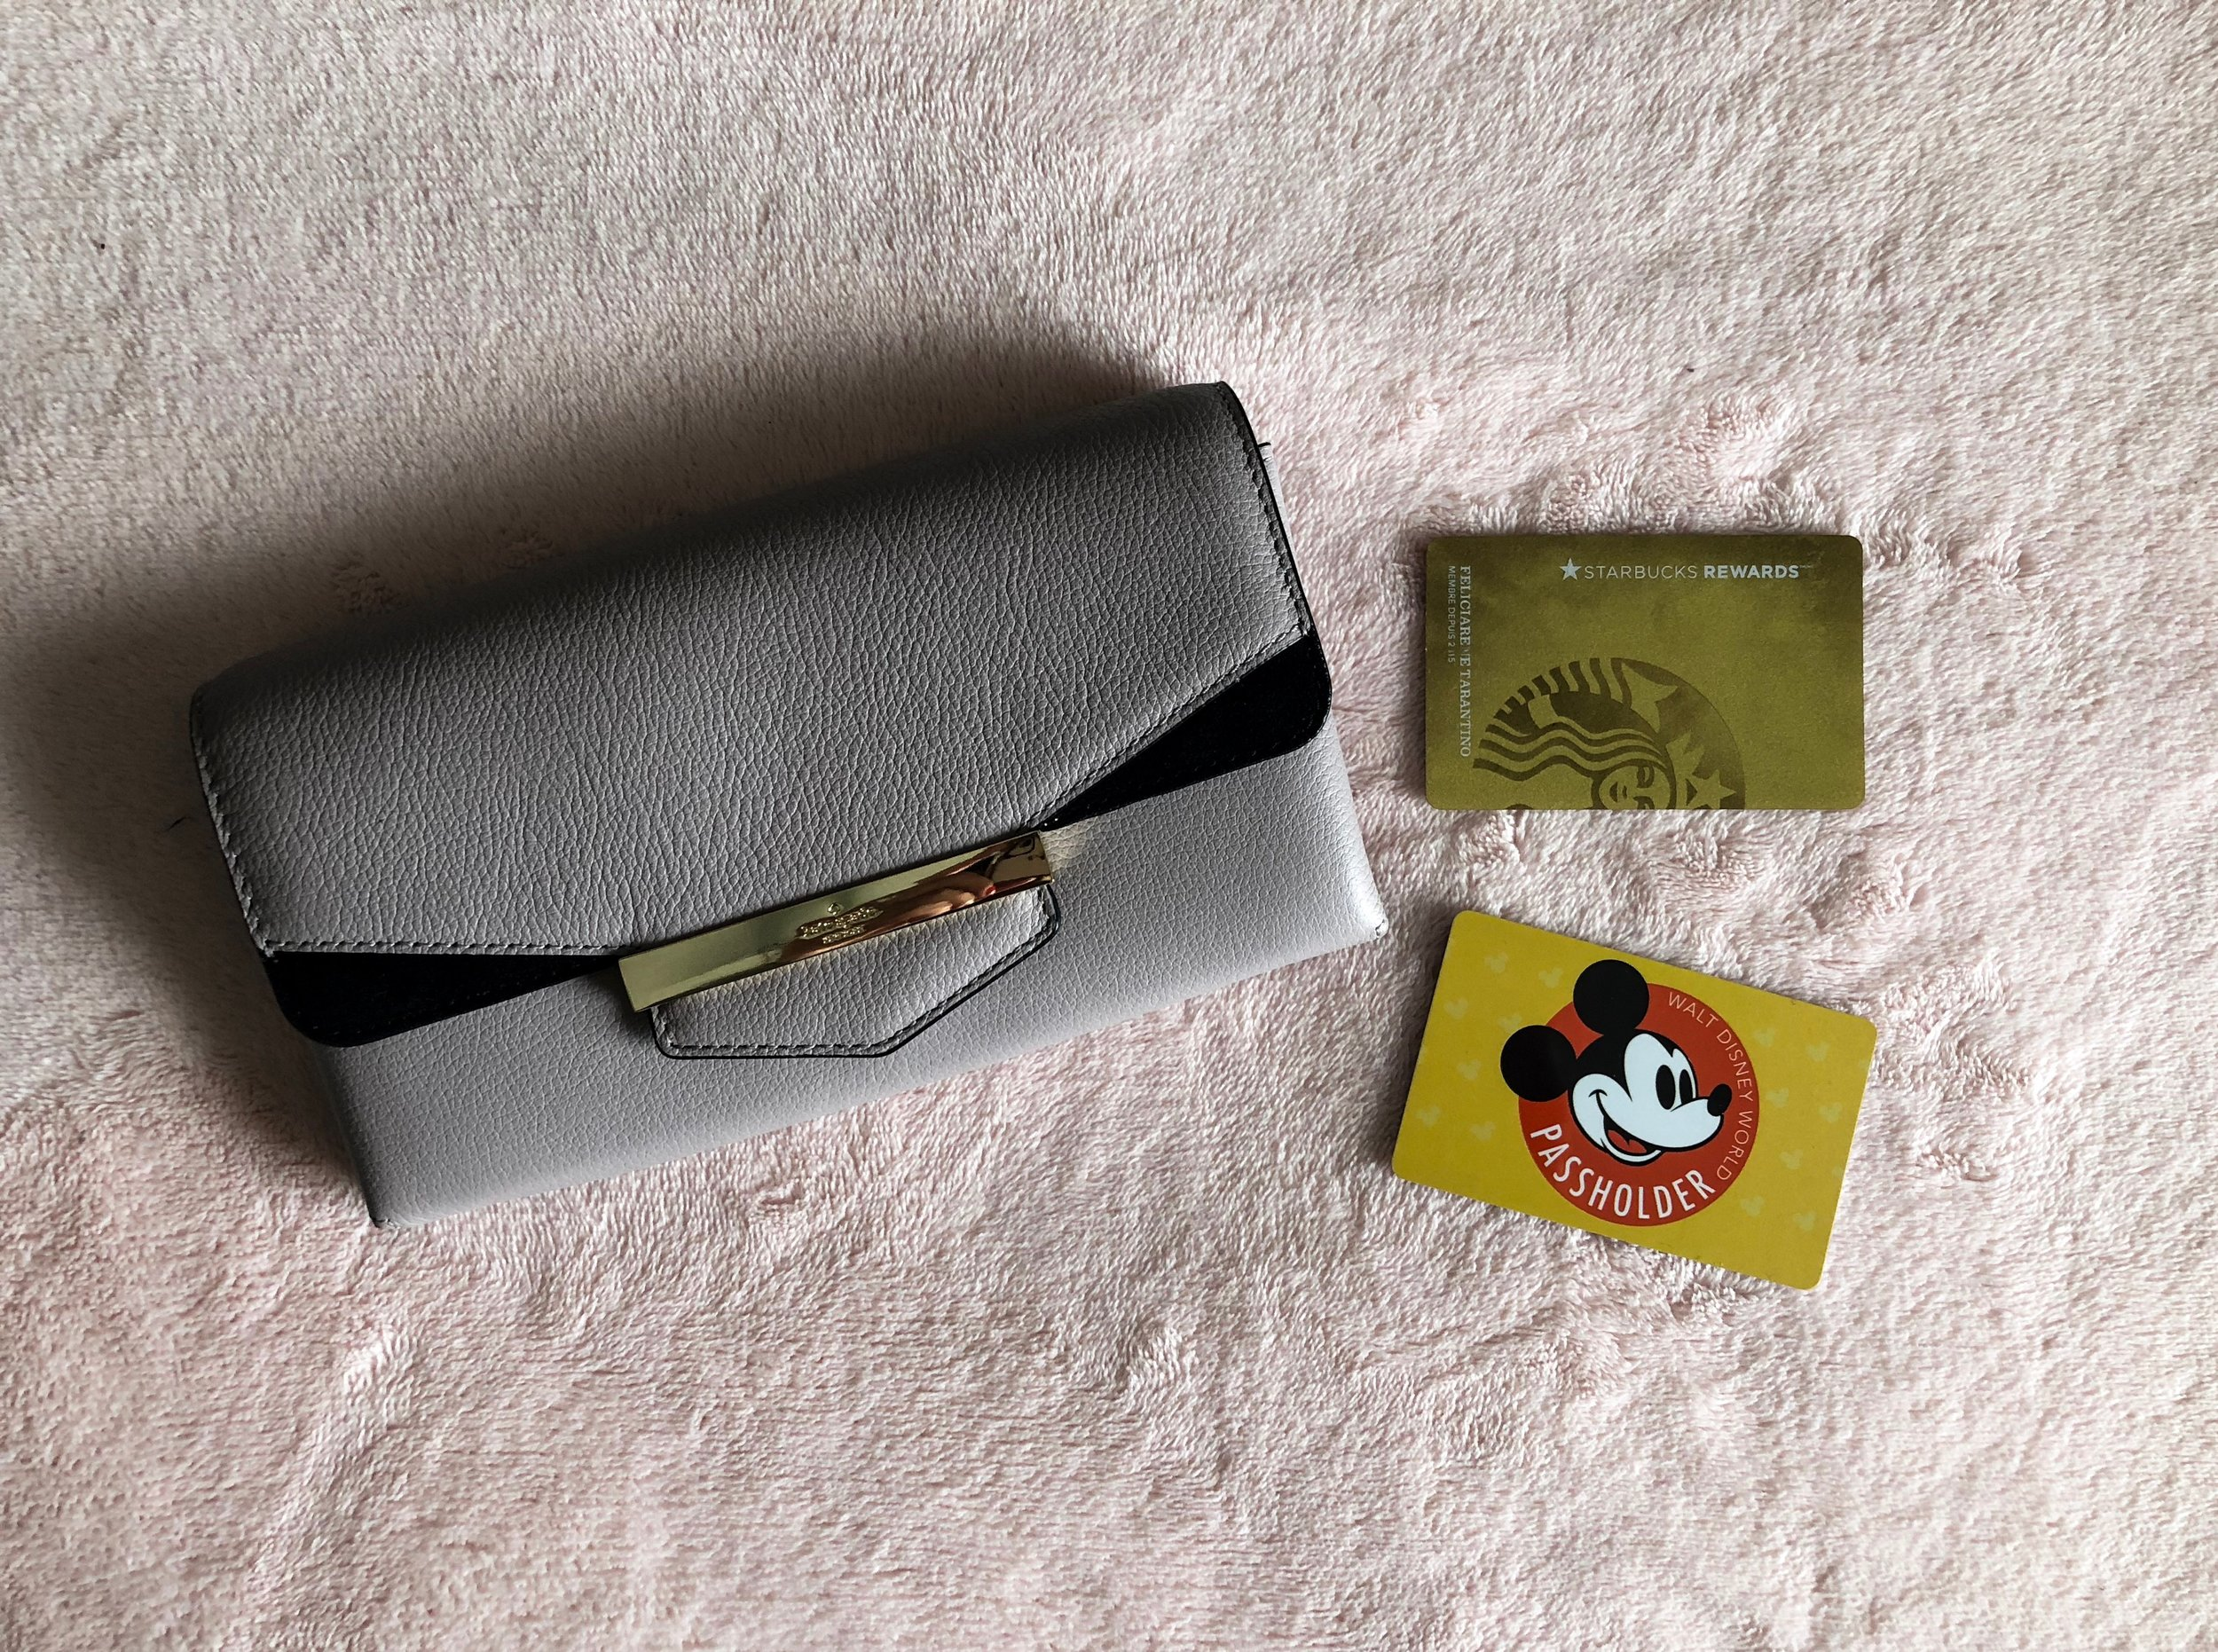 Wallet - First and foremost, I always make sure to have my wallet on me. You always want to make sure to have your Credit/Debit cards and some US currency. I also will have my Disney annual pass for parking and discounts, and my Starbucks Rewards card for if I want to get a coffee while I'm at Disney!